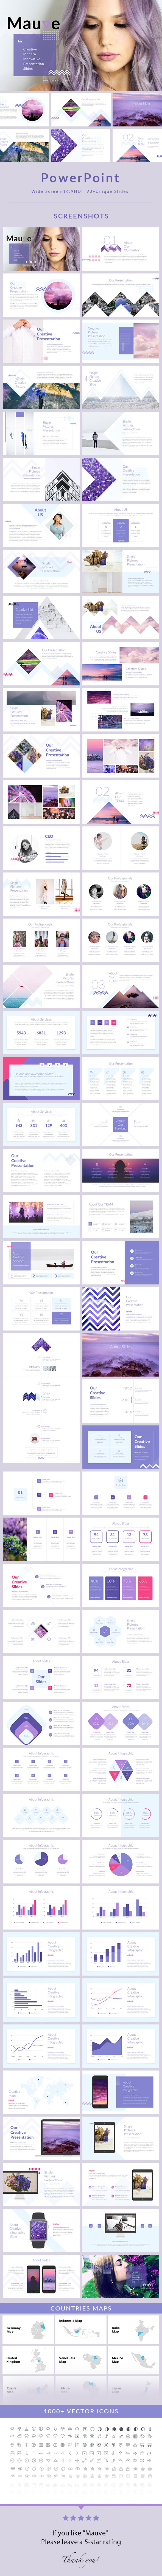 Mauve - PowerPoint Presentation Template - Creative PowerPoint Templates